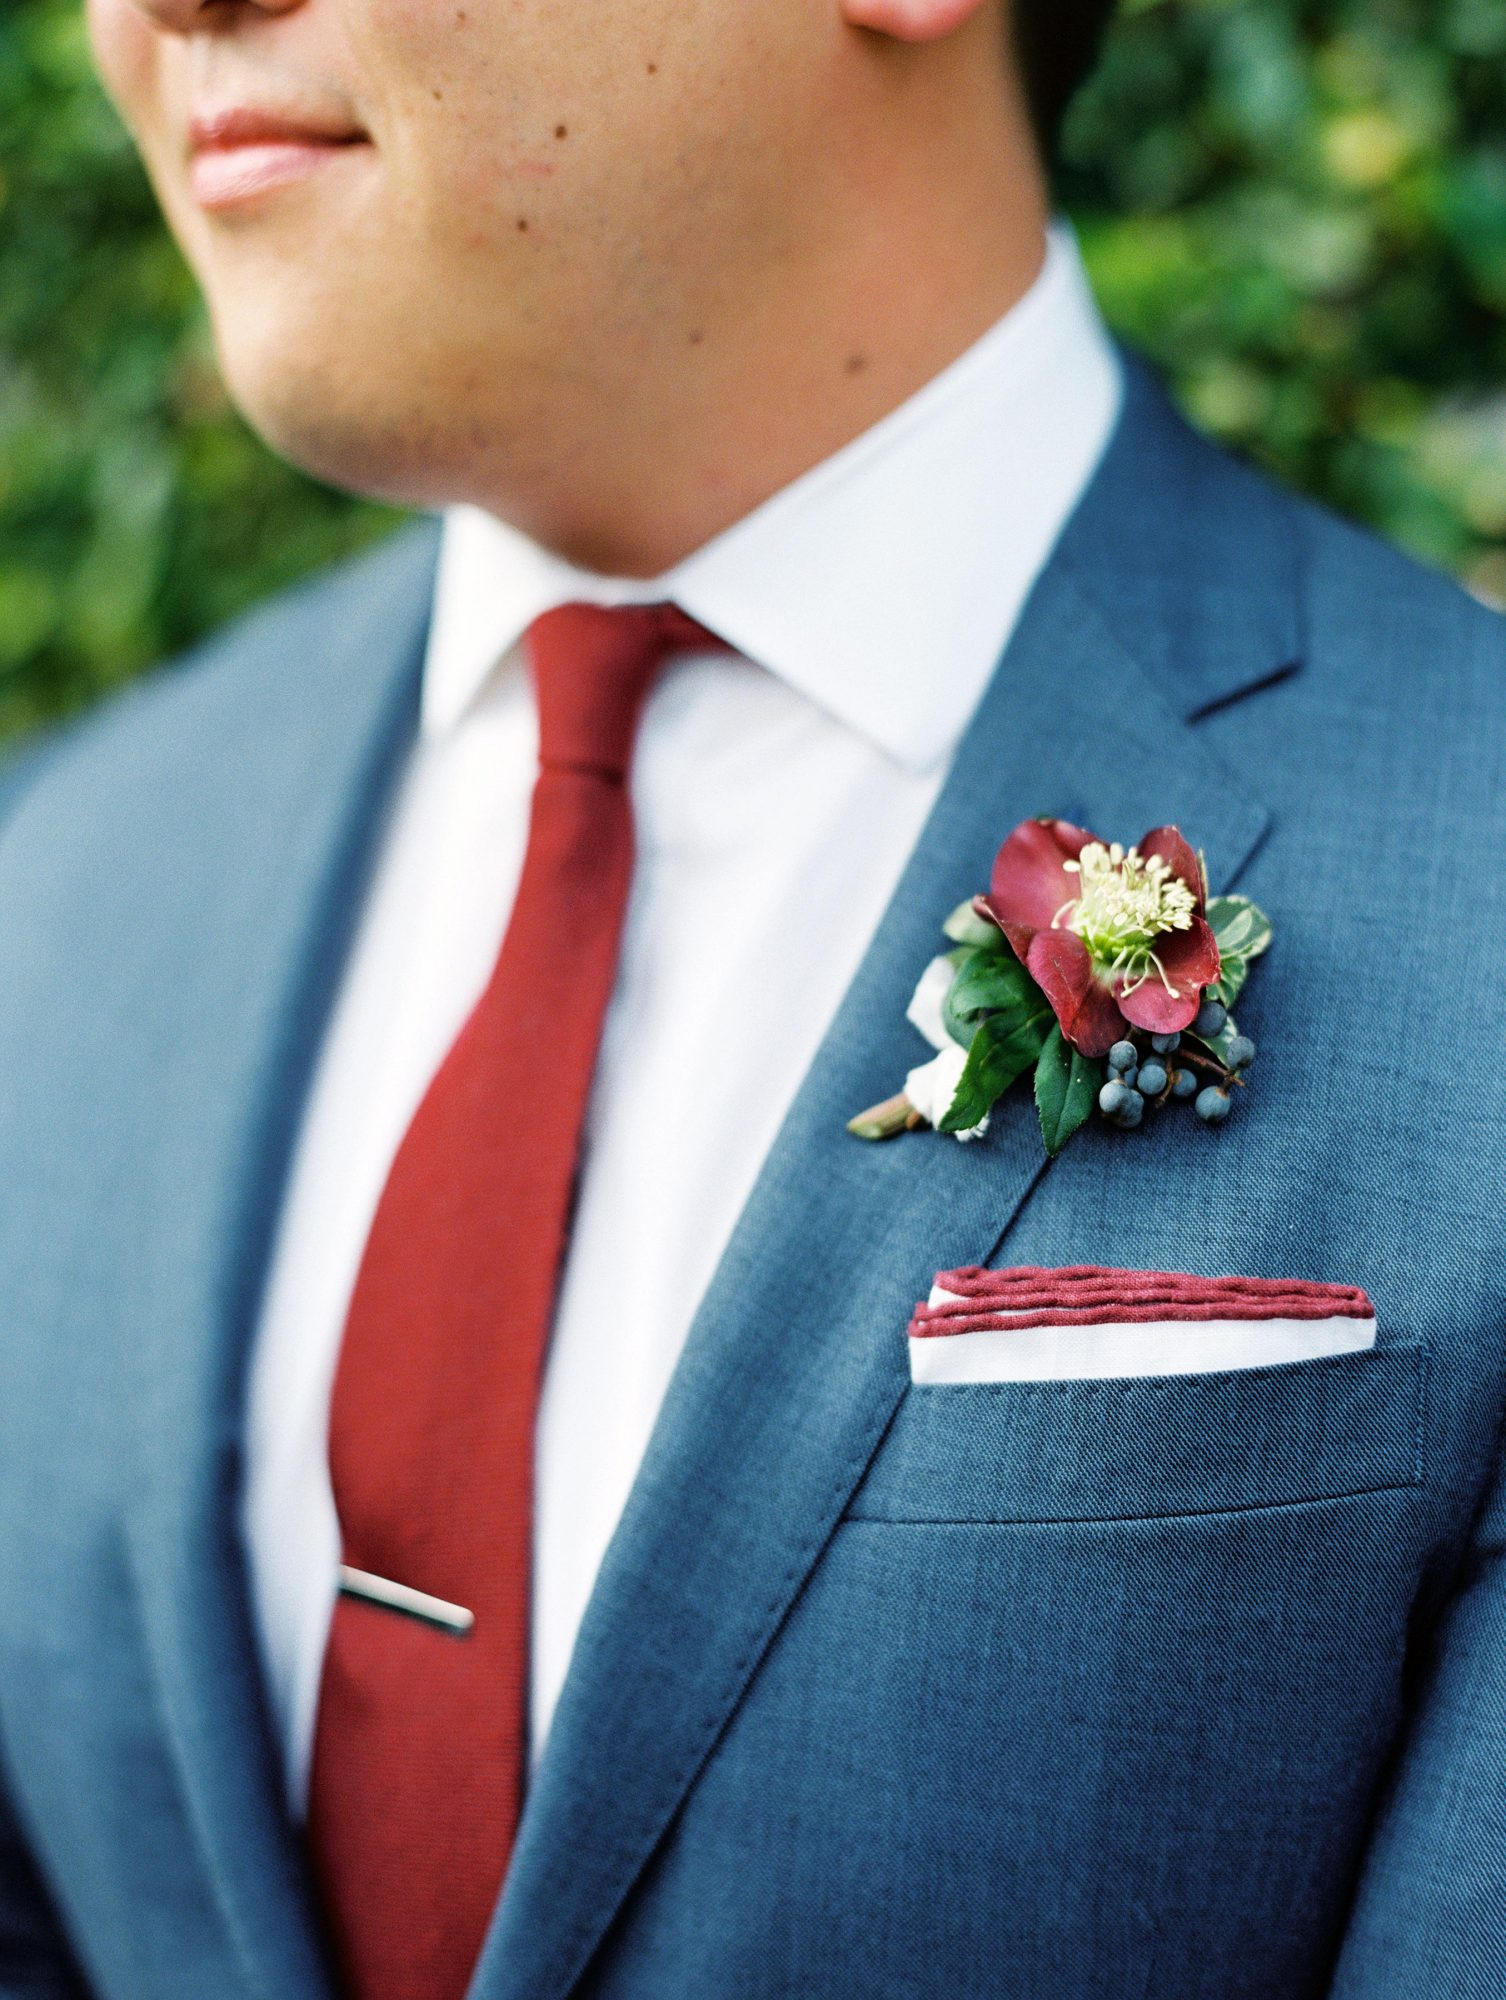 His Boutonniere